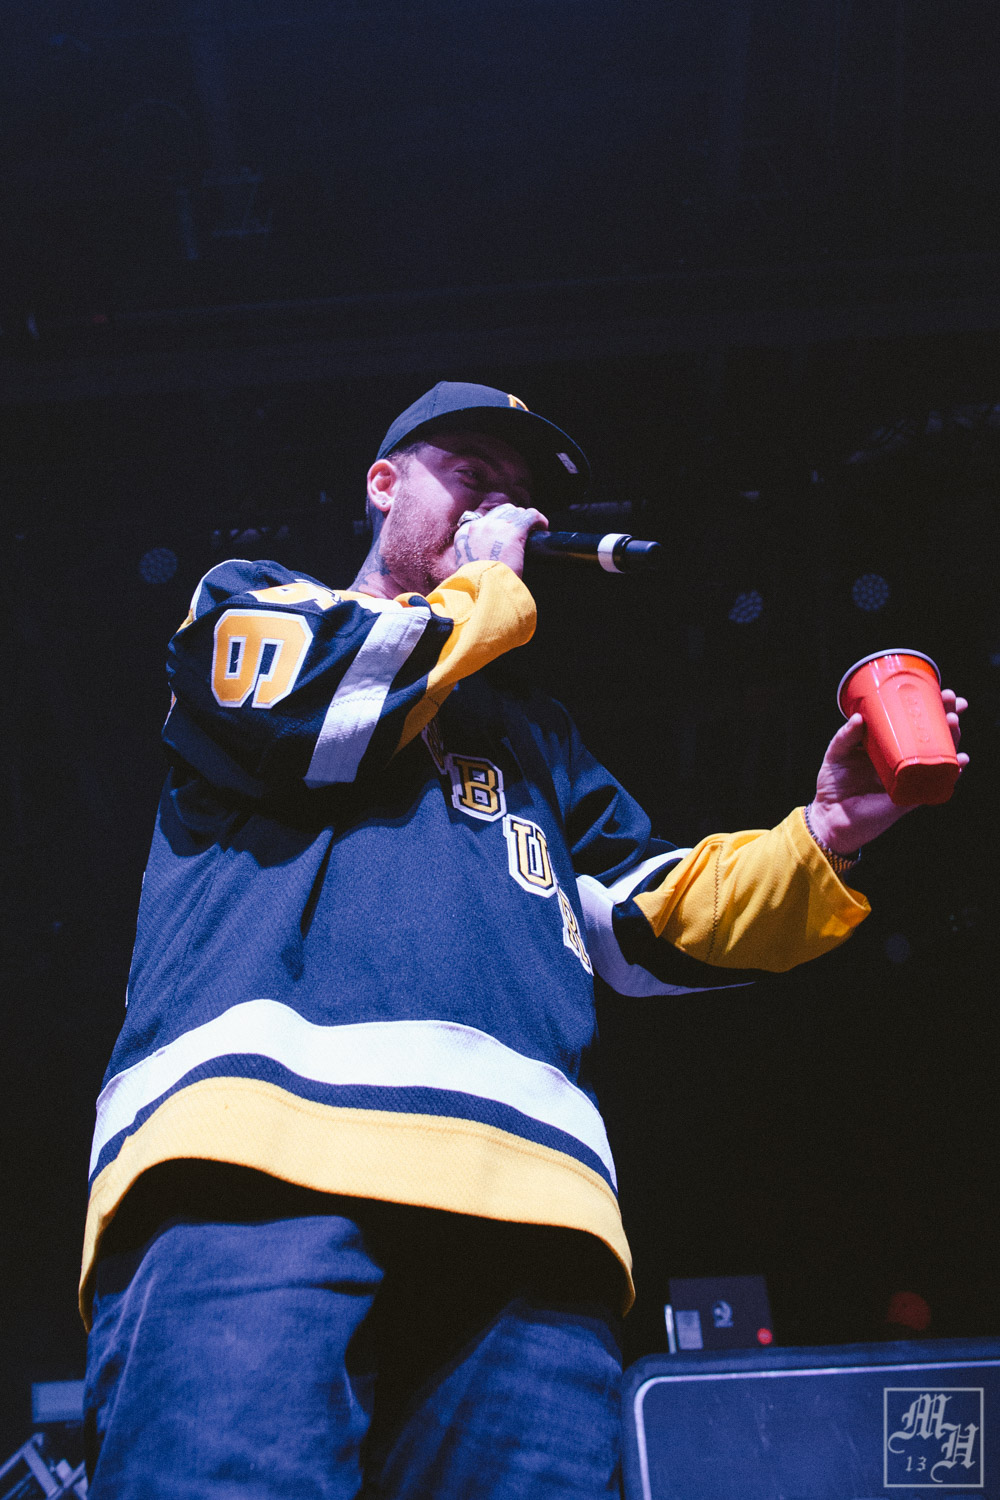 macmiller_earth_christmasDec12-54.jpg